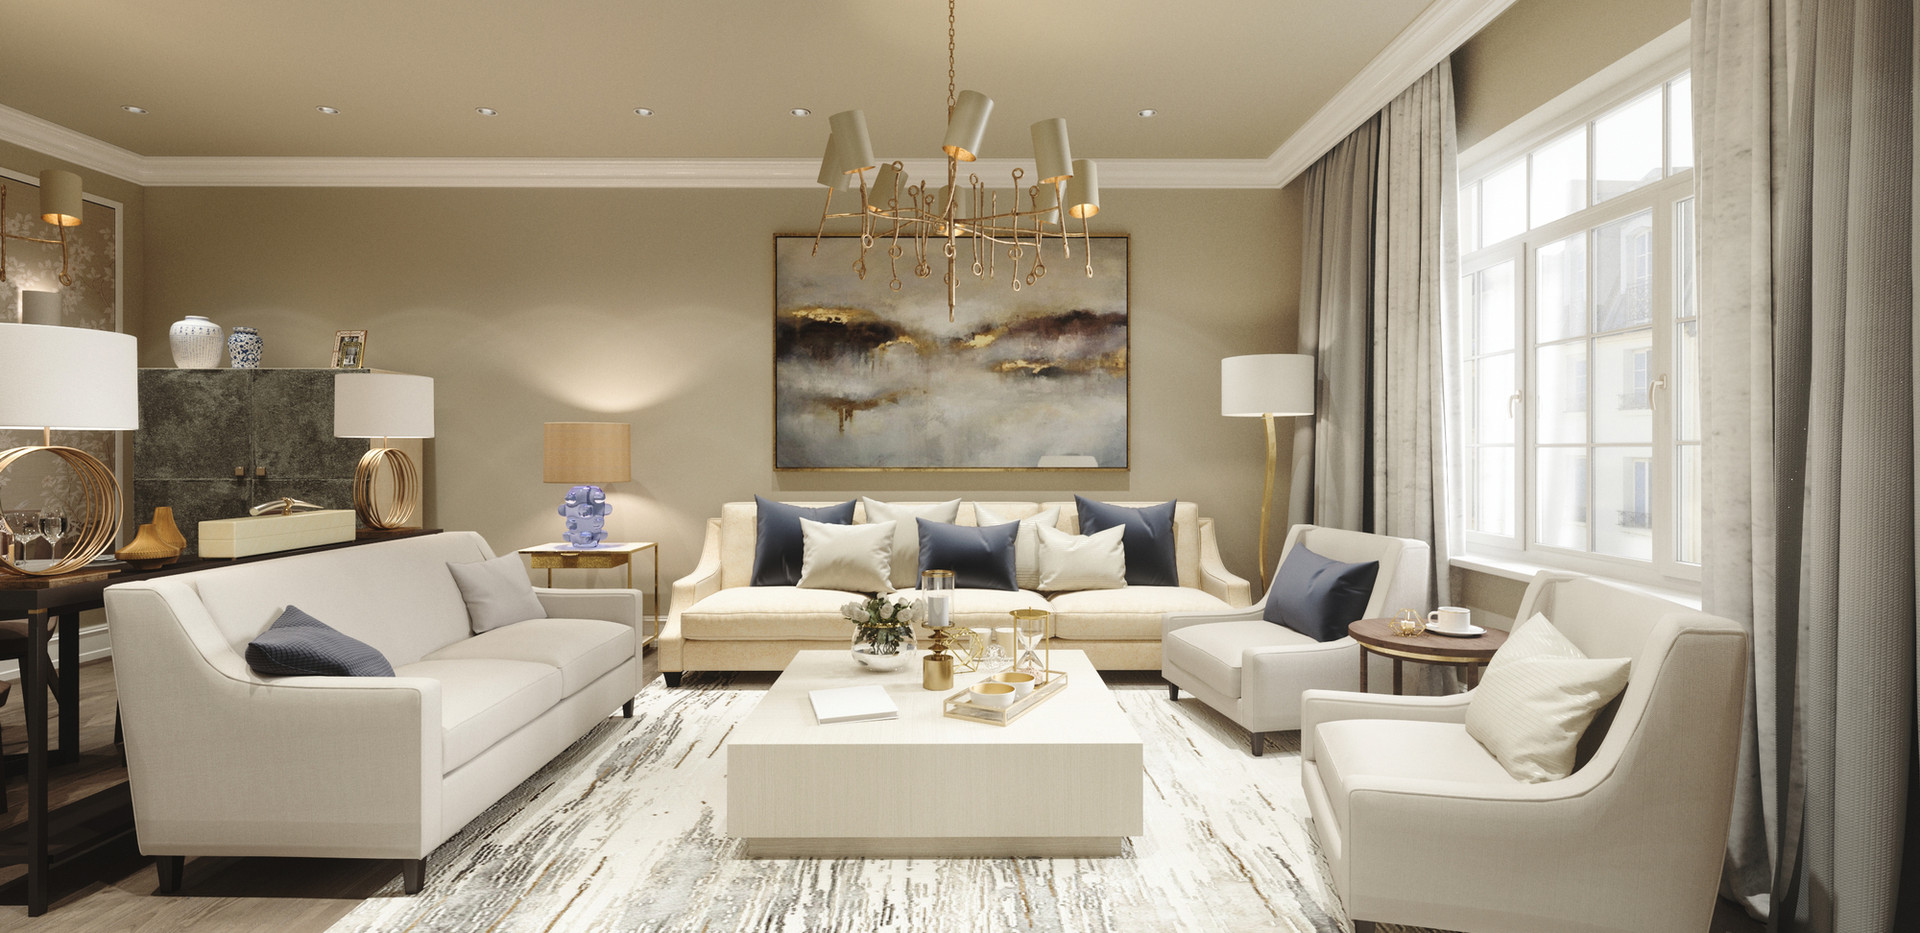 Living room design 3d